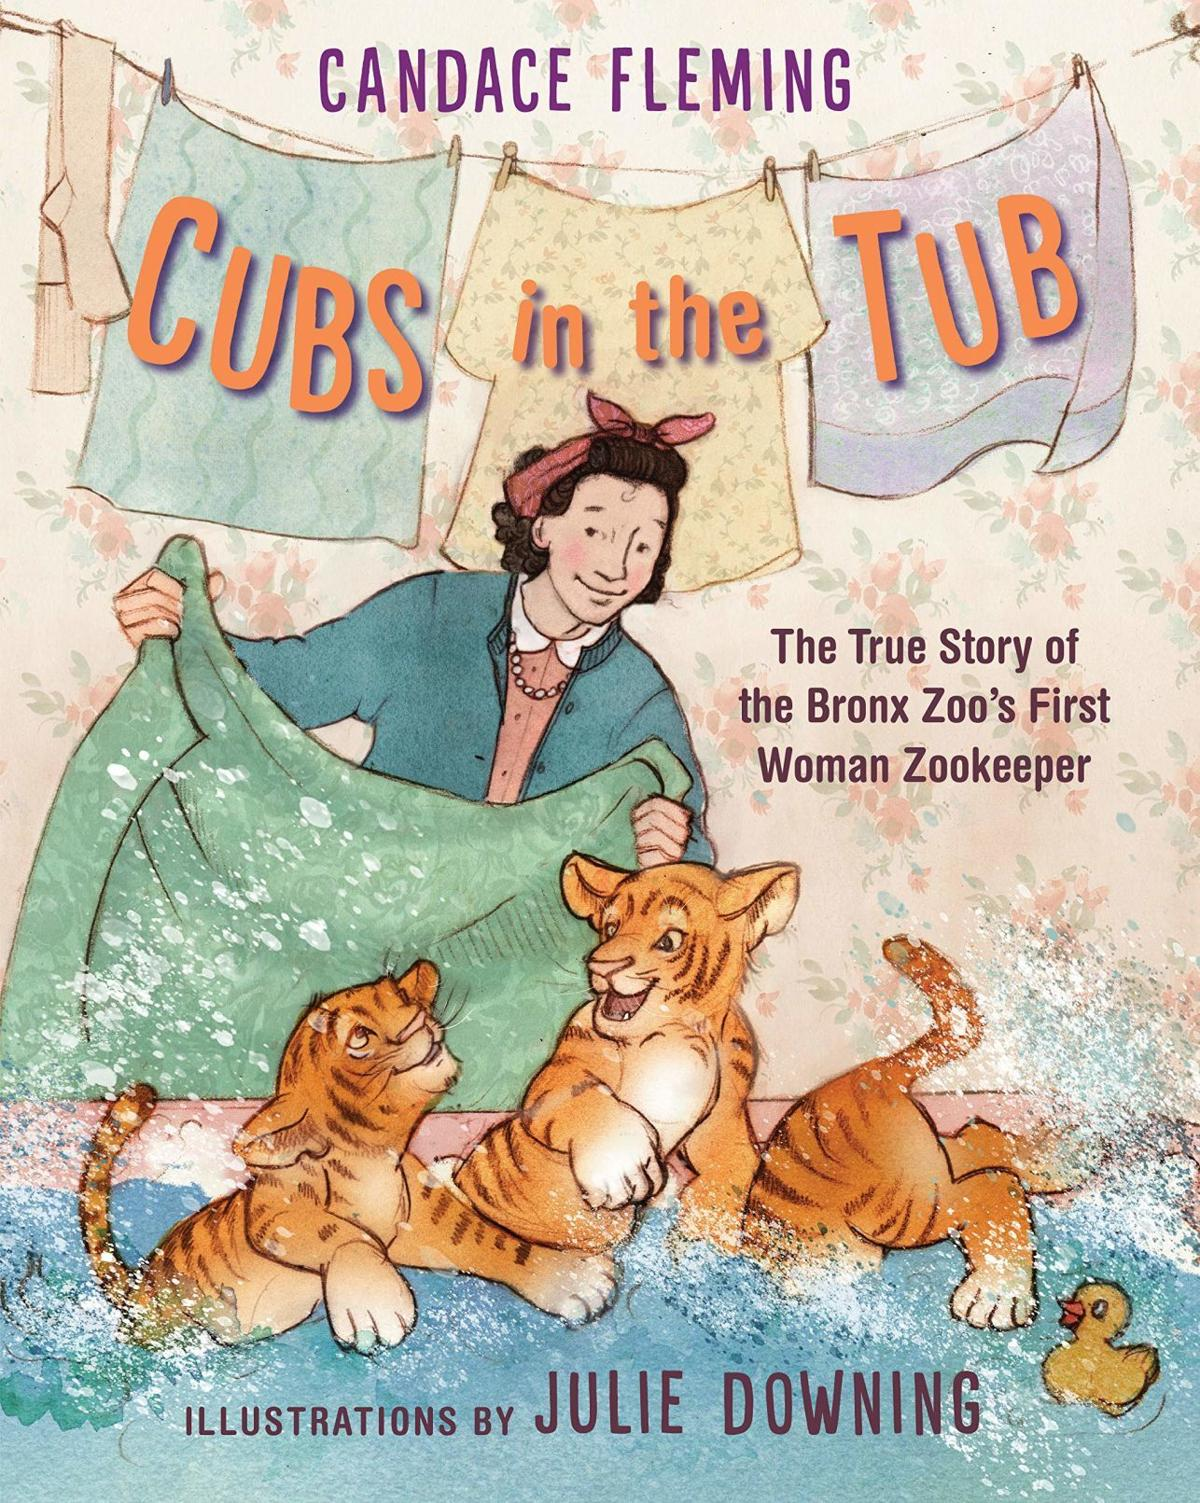 'Cubs in the Tub'